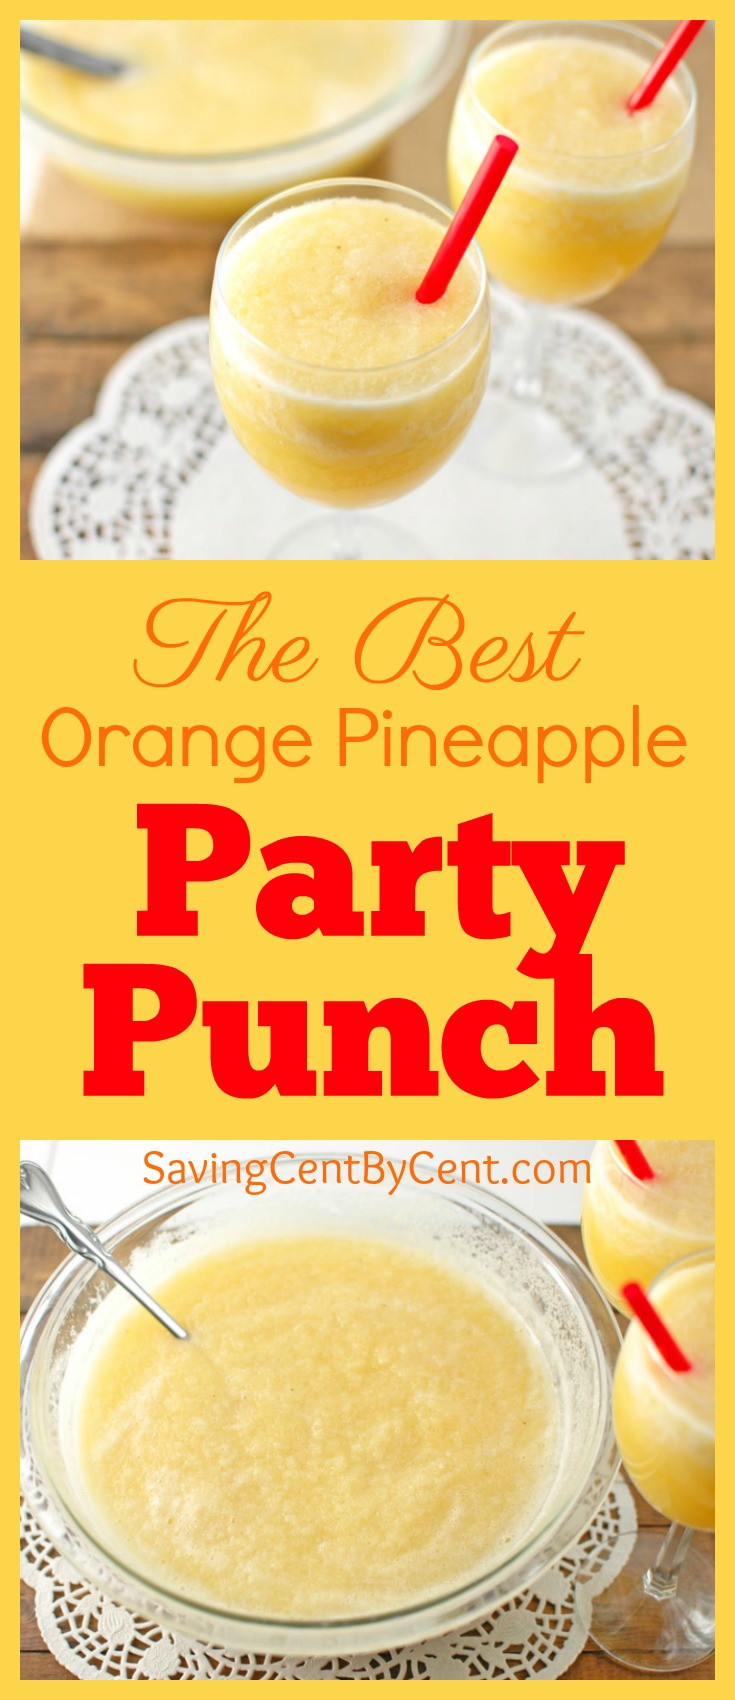 The Best Orange Pineapple Party Punch